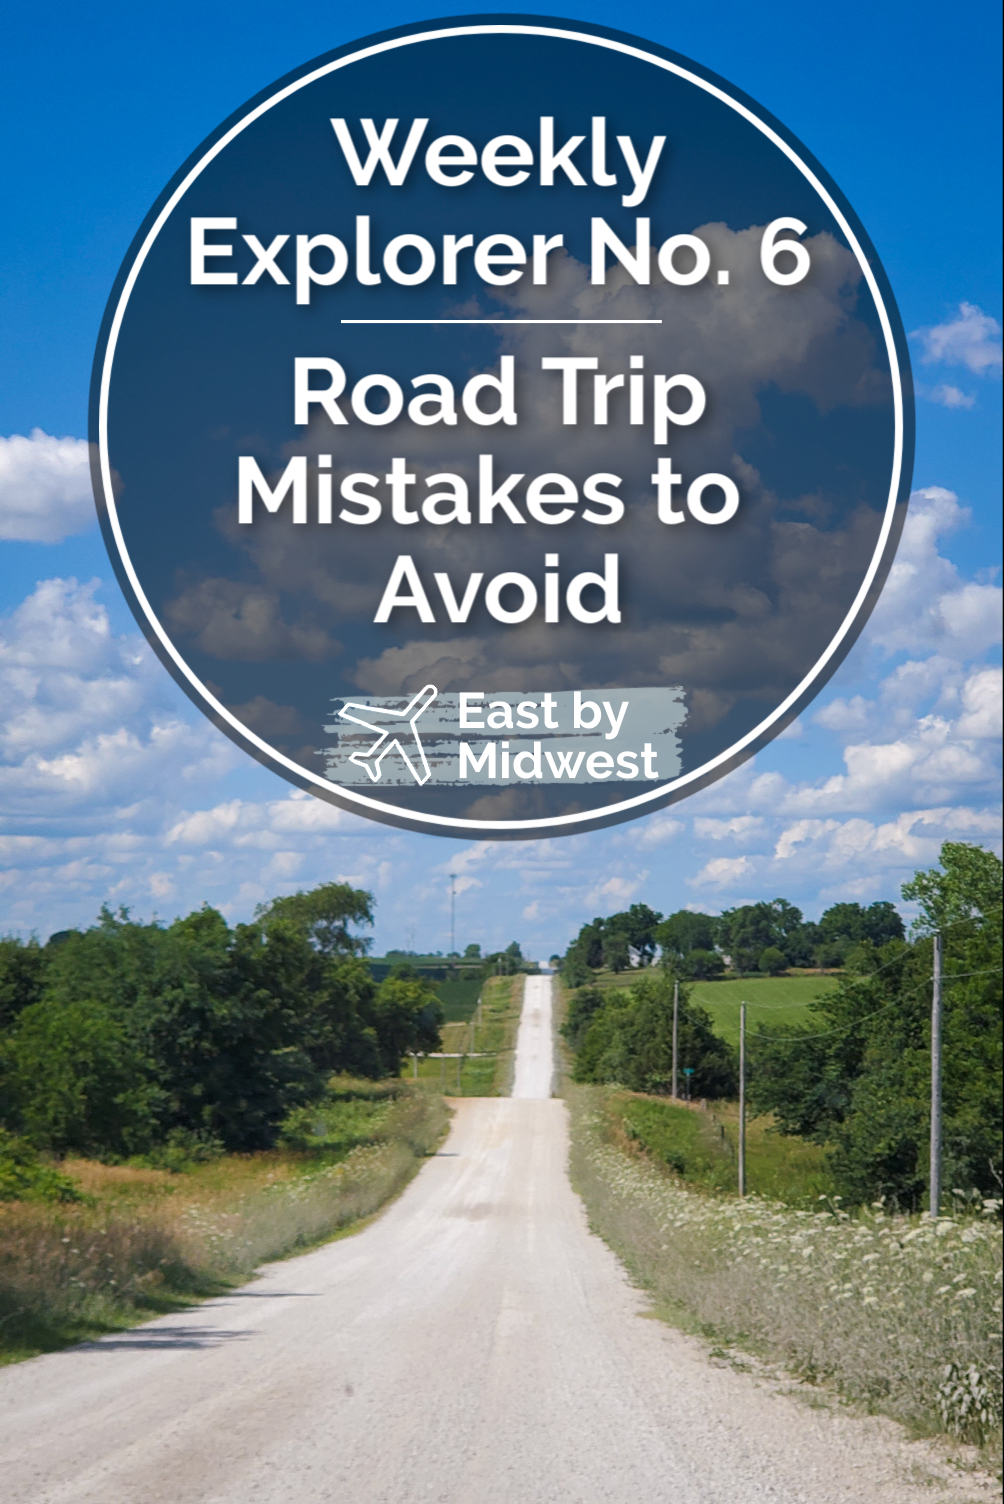 Weekly Explorer No. 6: Road Trip Mistakes to Avoid